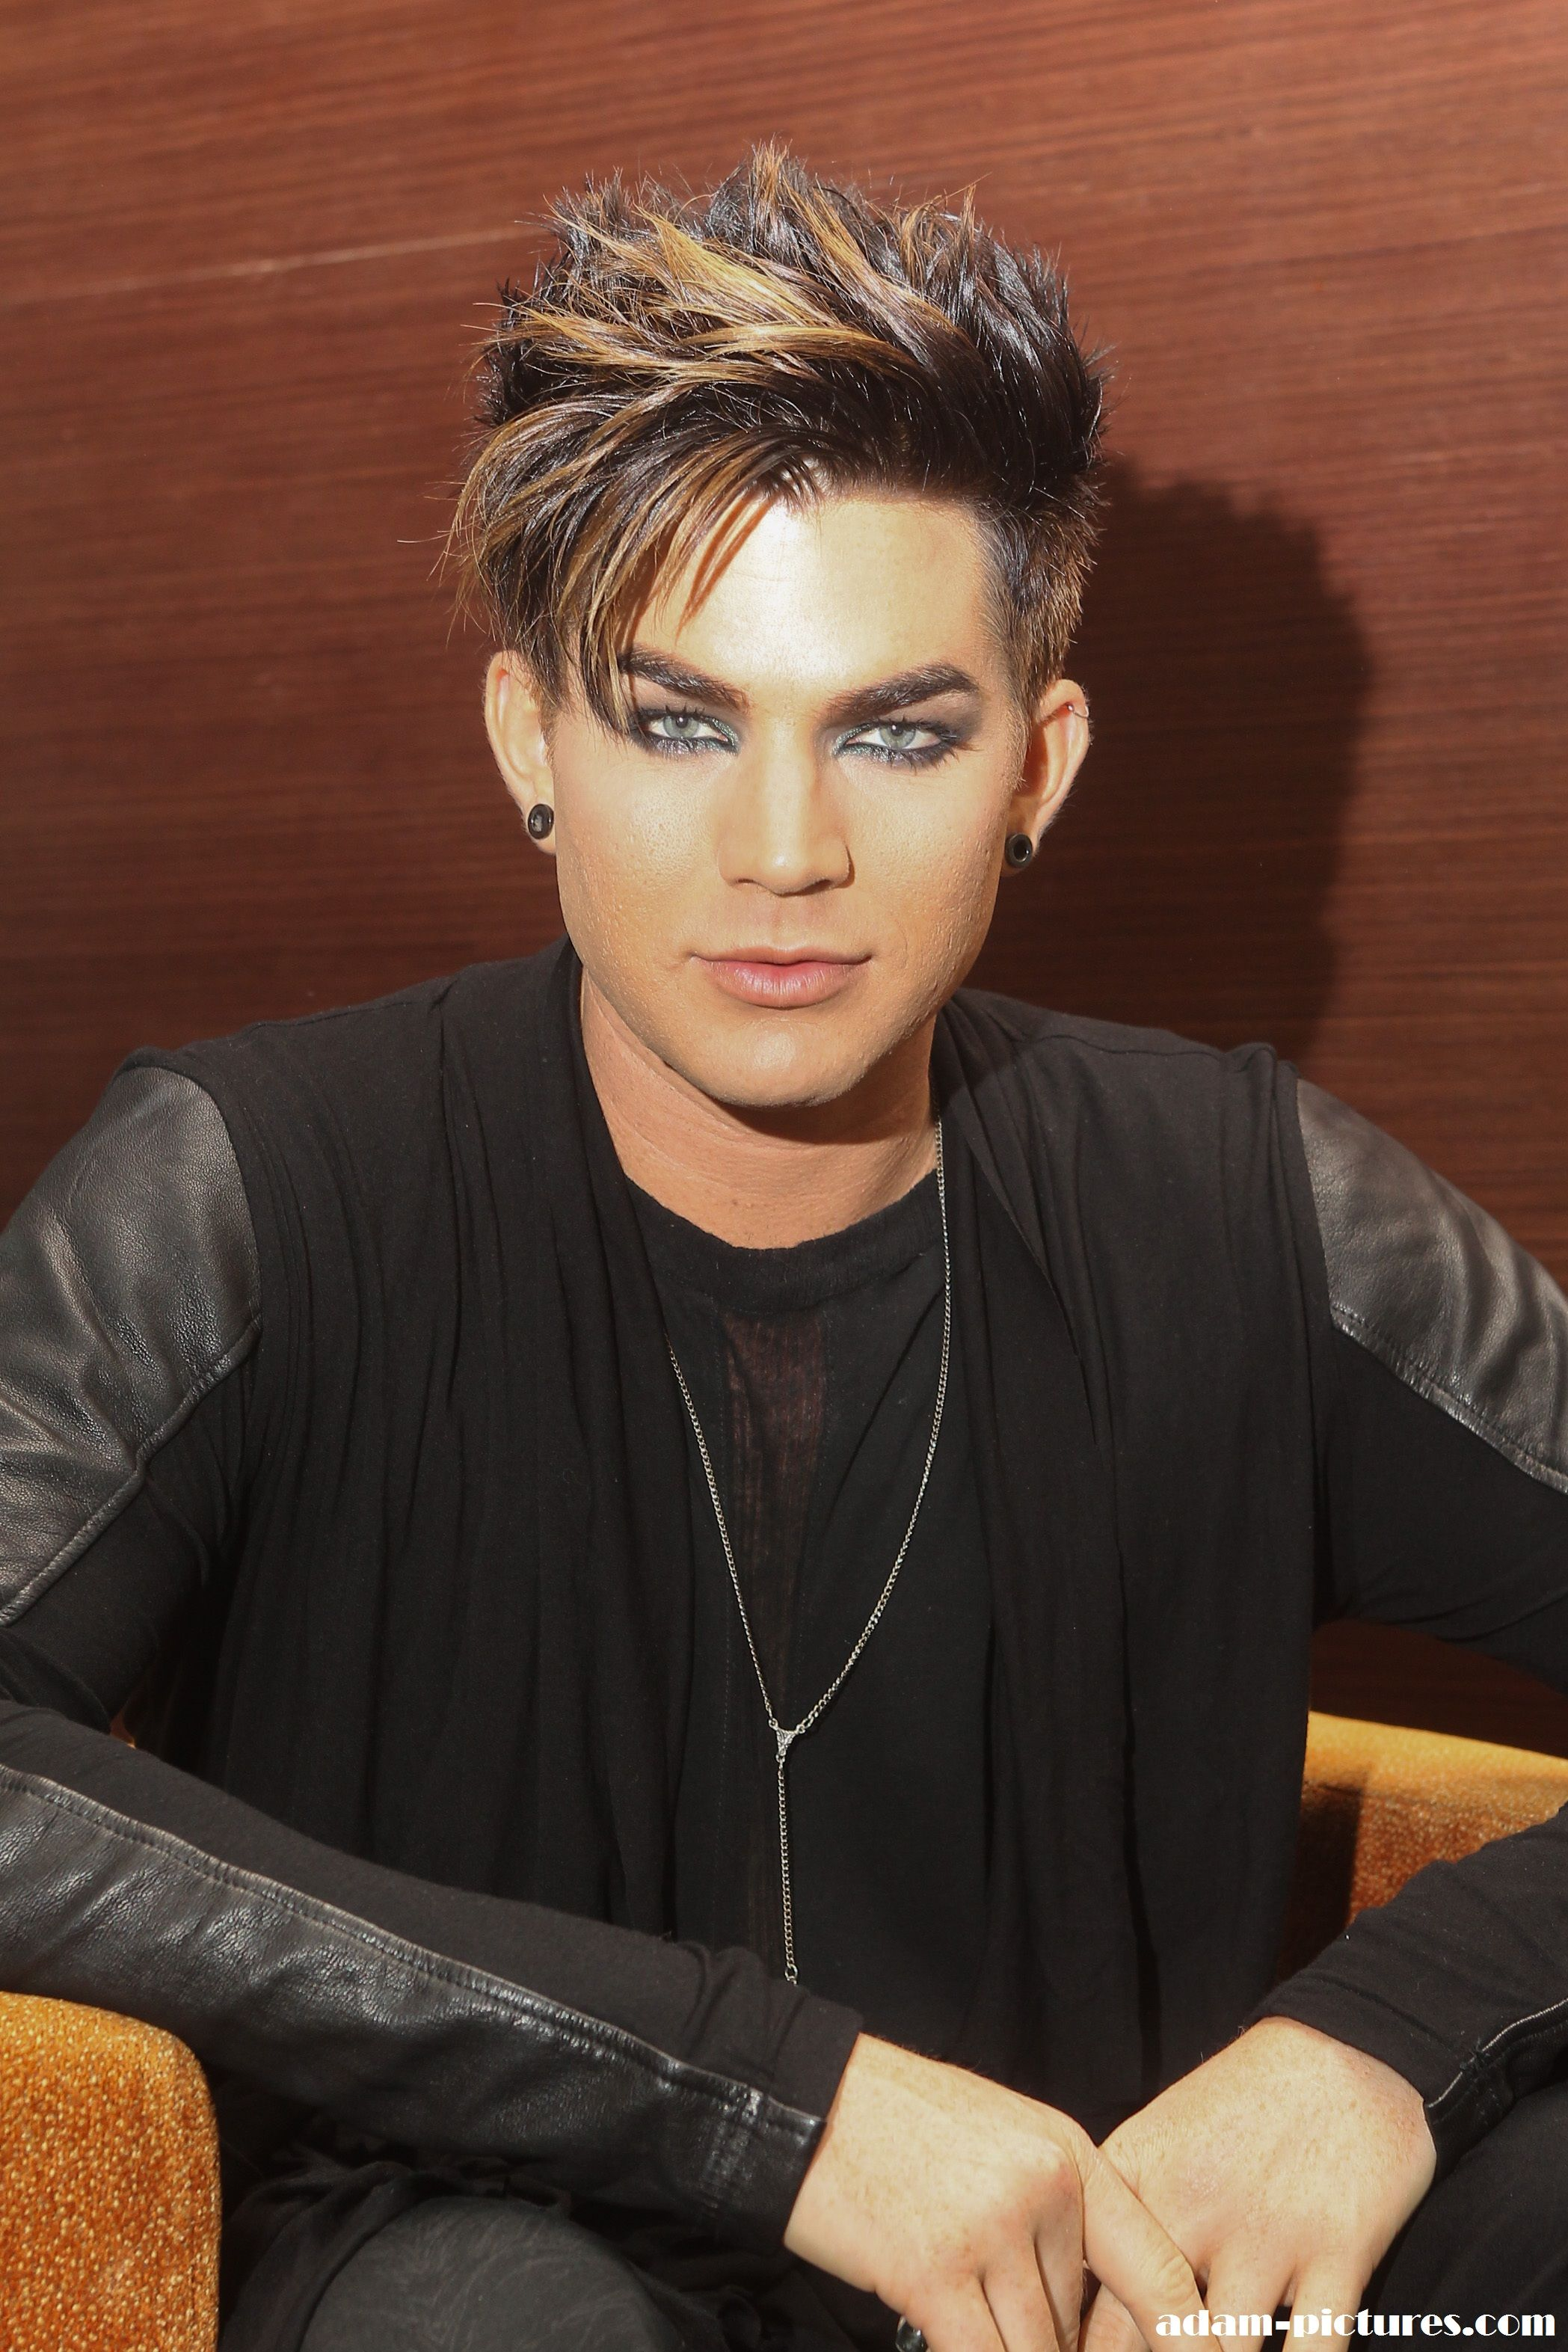 Gay gay gay gay yay in adam lambert pinterest adam